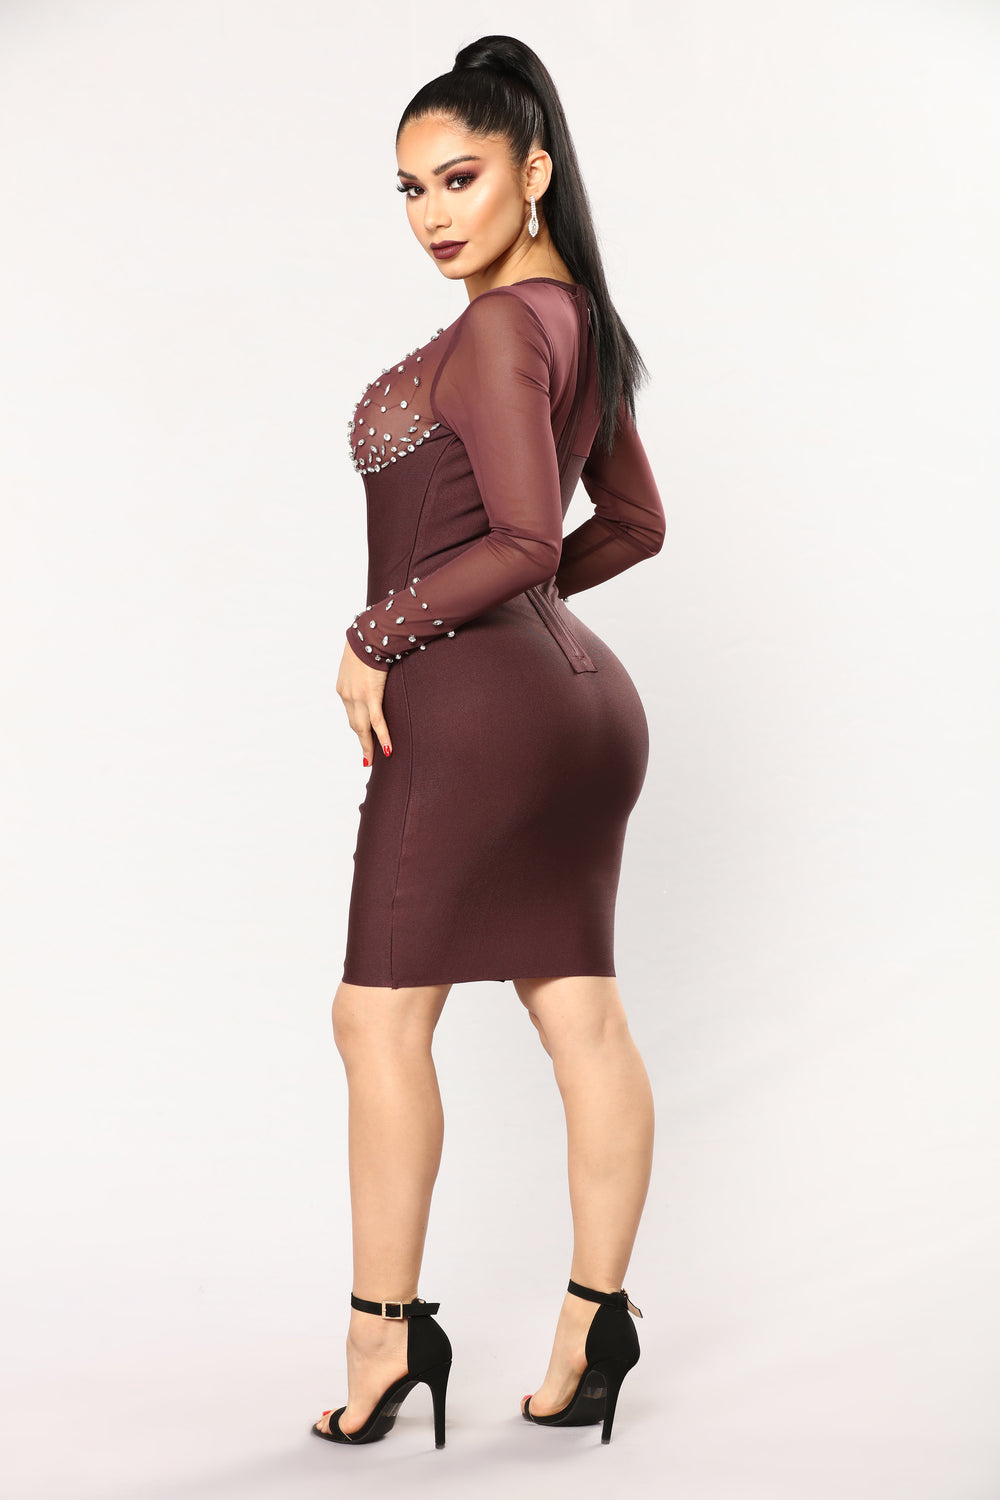 Sprinkled With Shine Dress - Plum